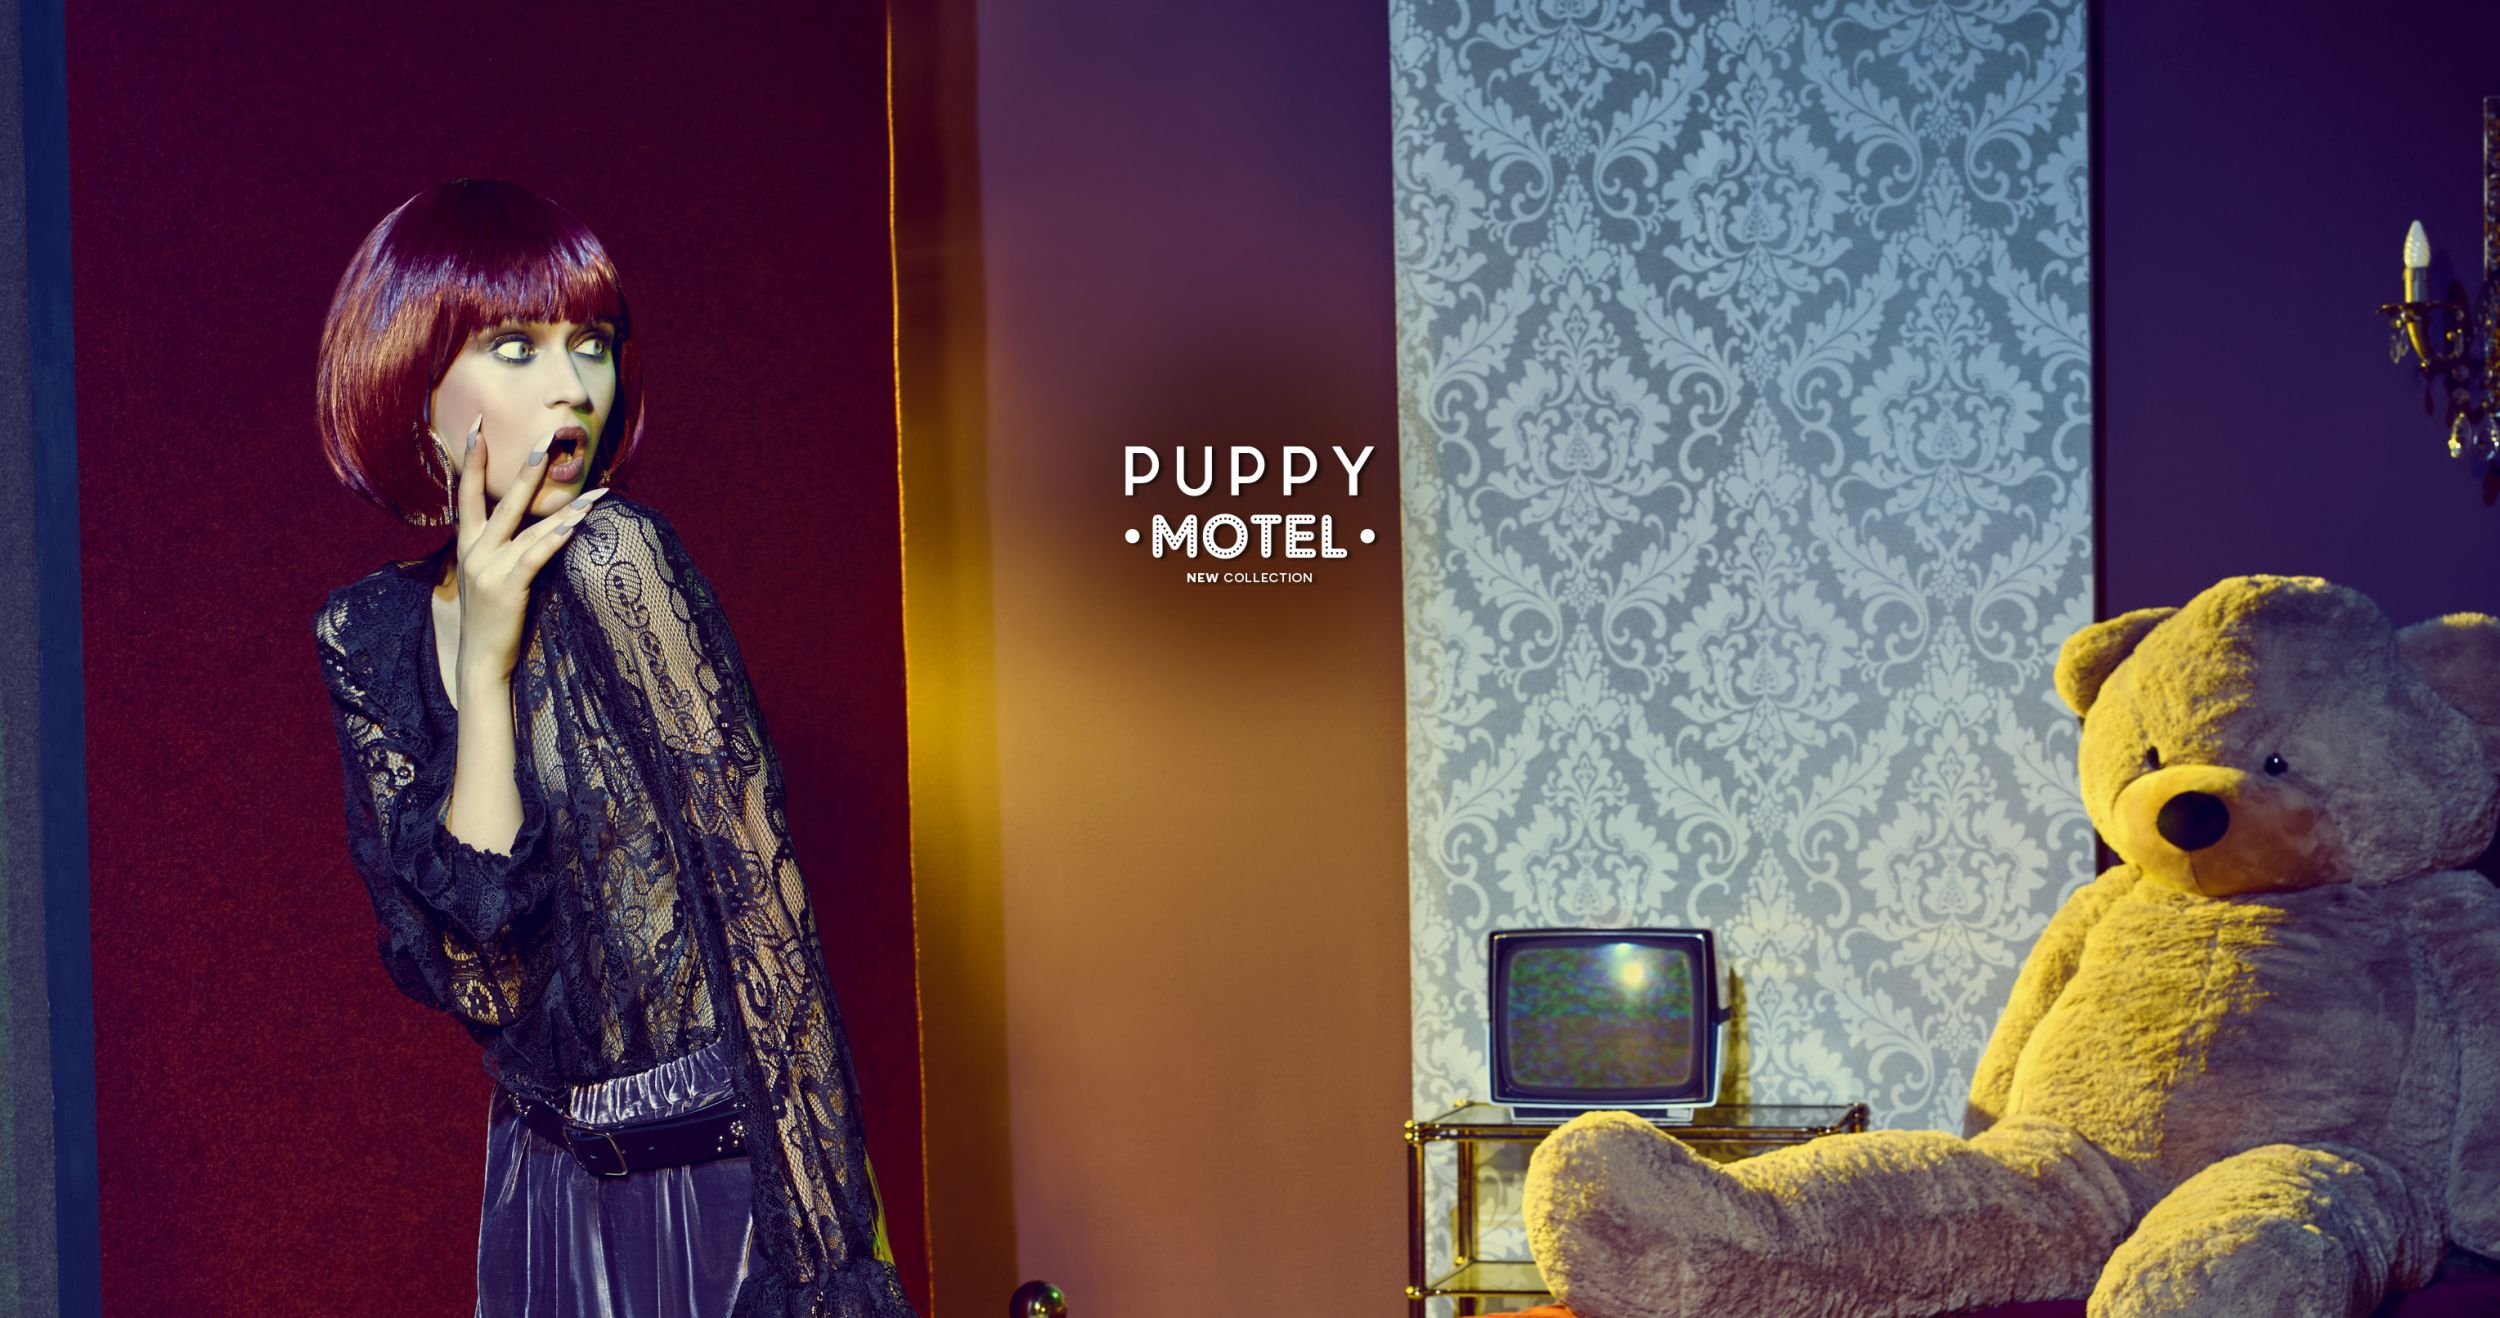 PUPPY MOTEL  new collection